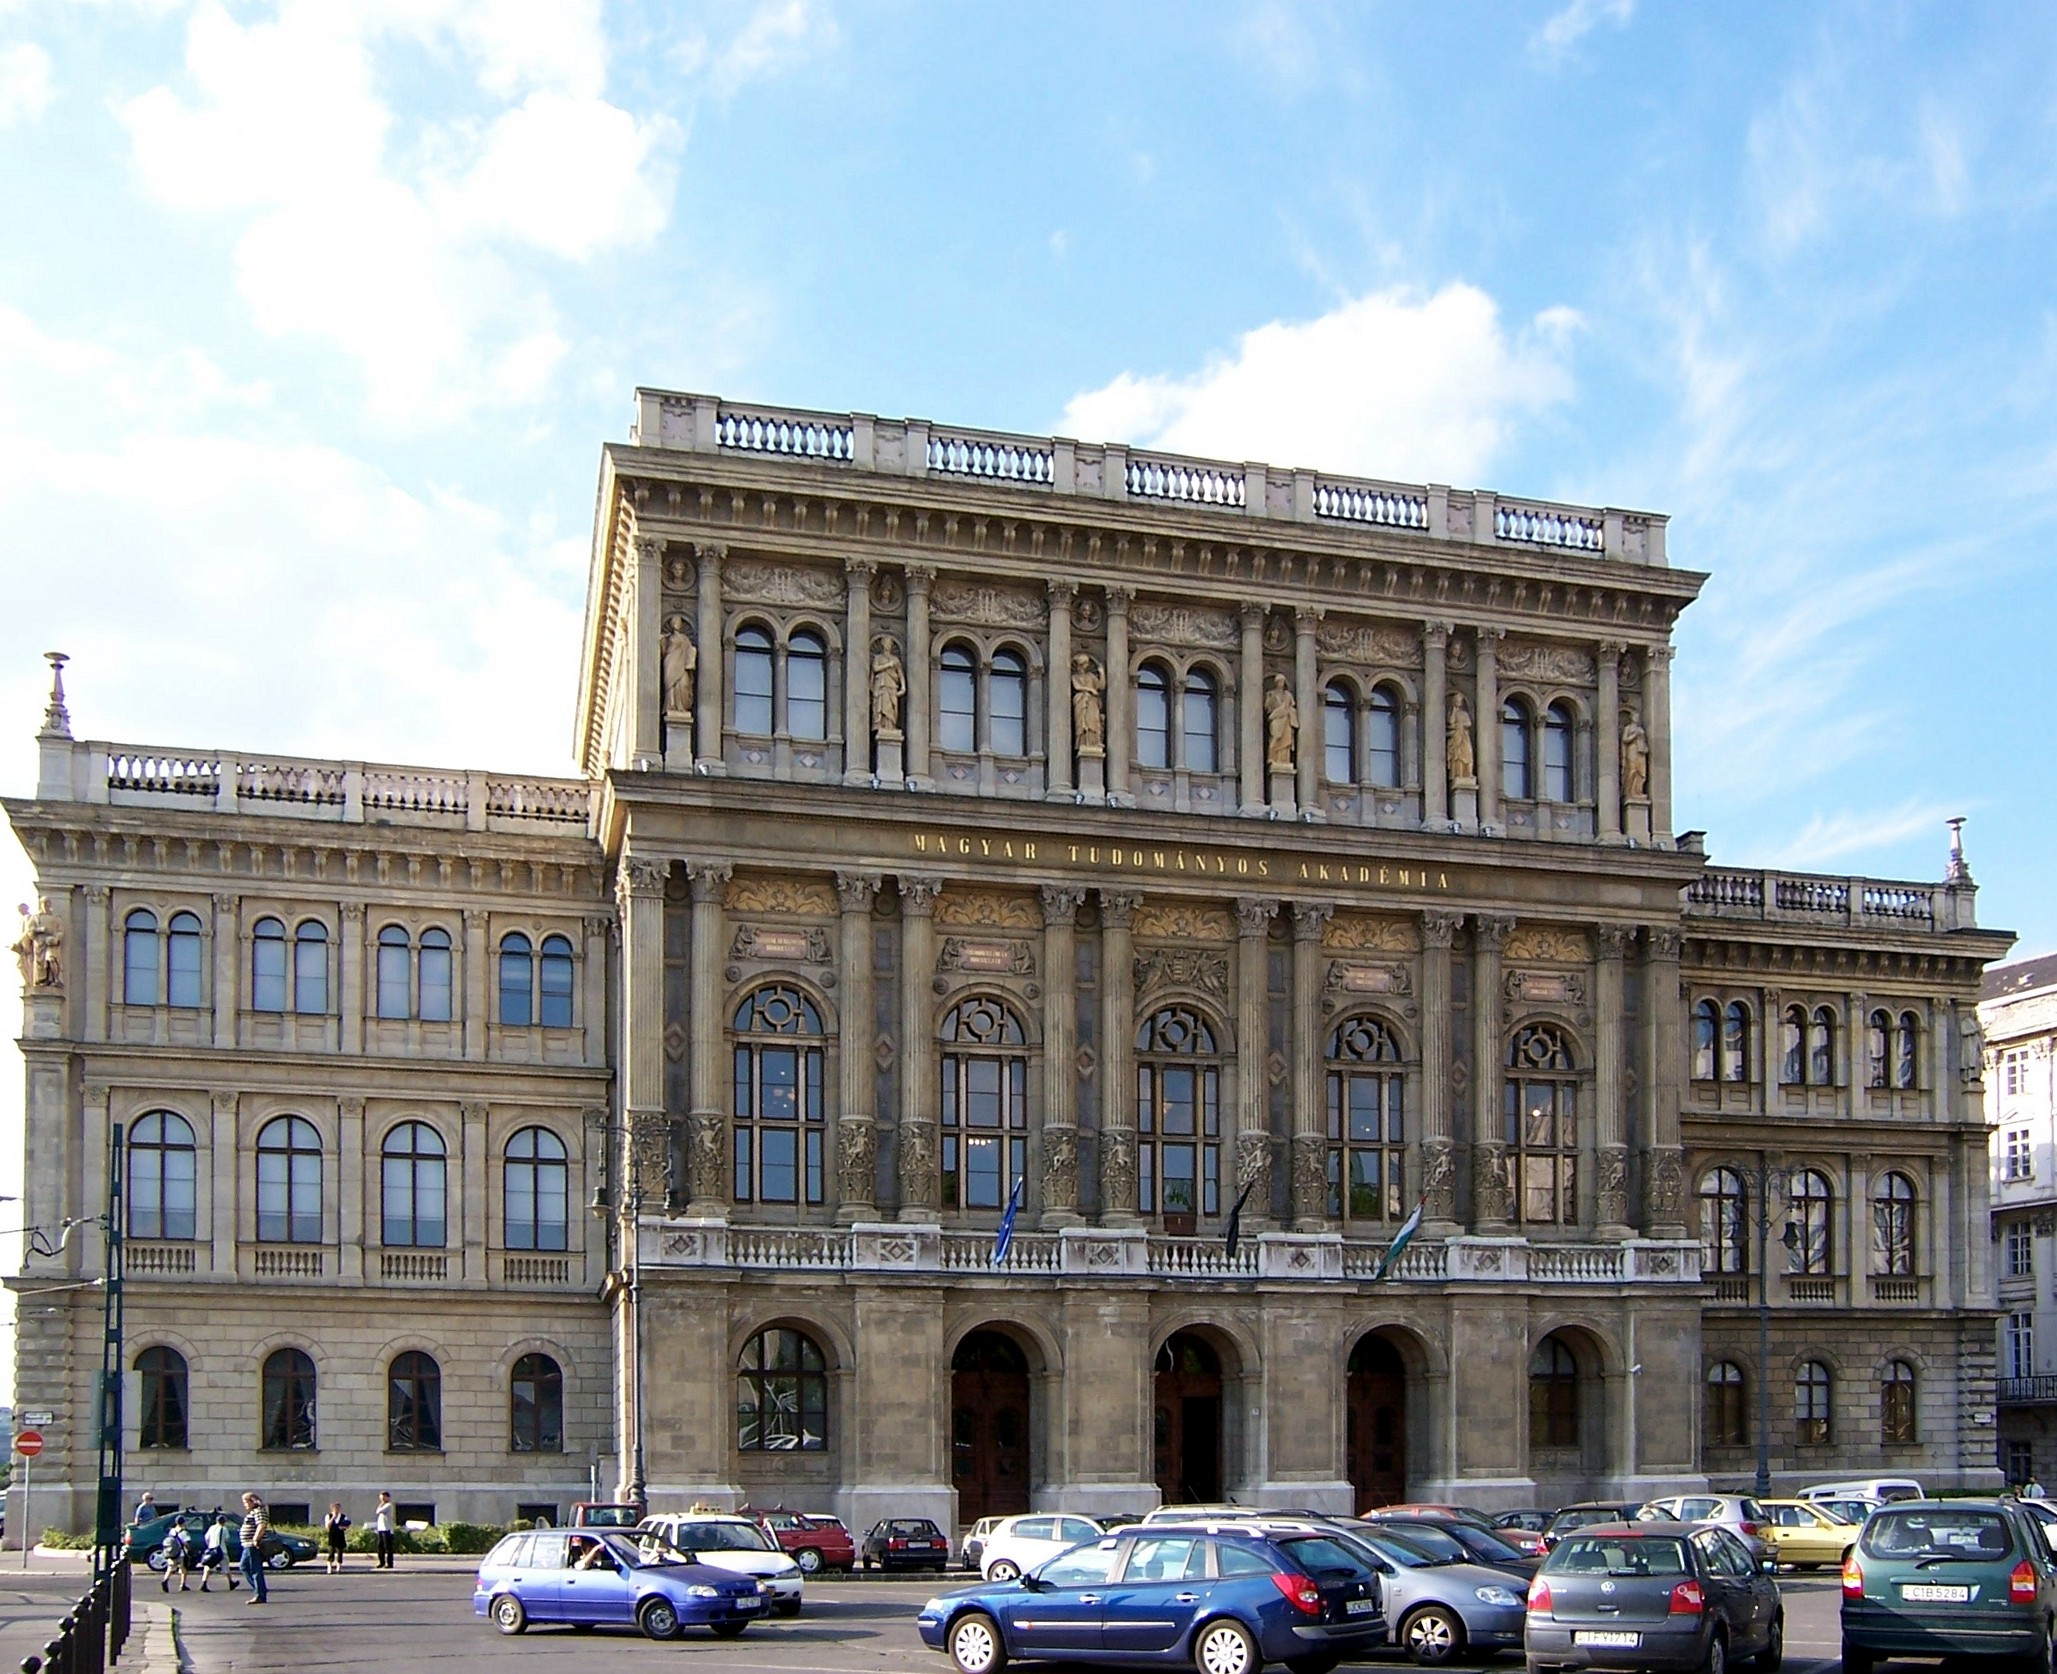 http://upload.wikimedia.org/wikipedia/commons/f/fa/Budapest_Hungarian_Academy_of_Sciences.jpg